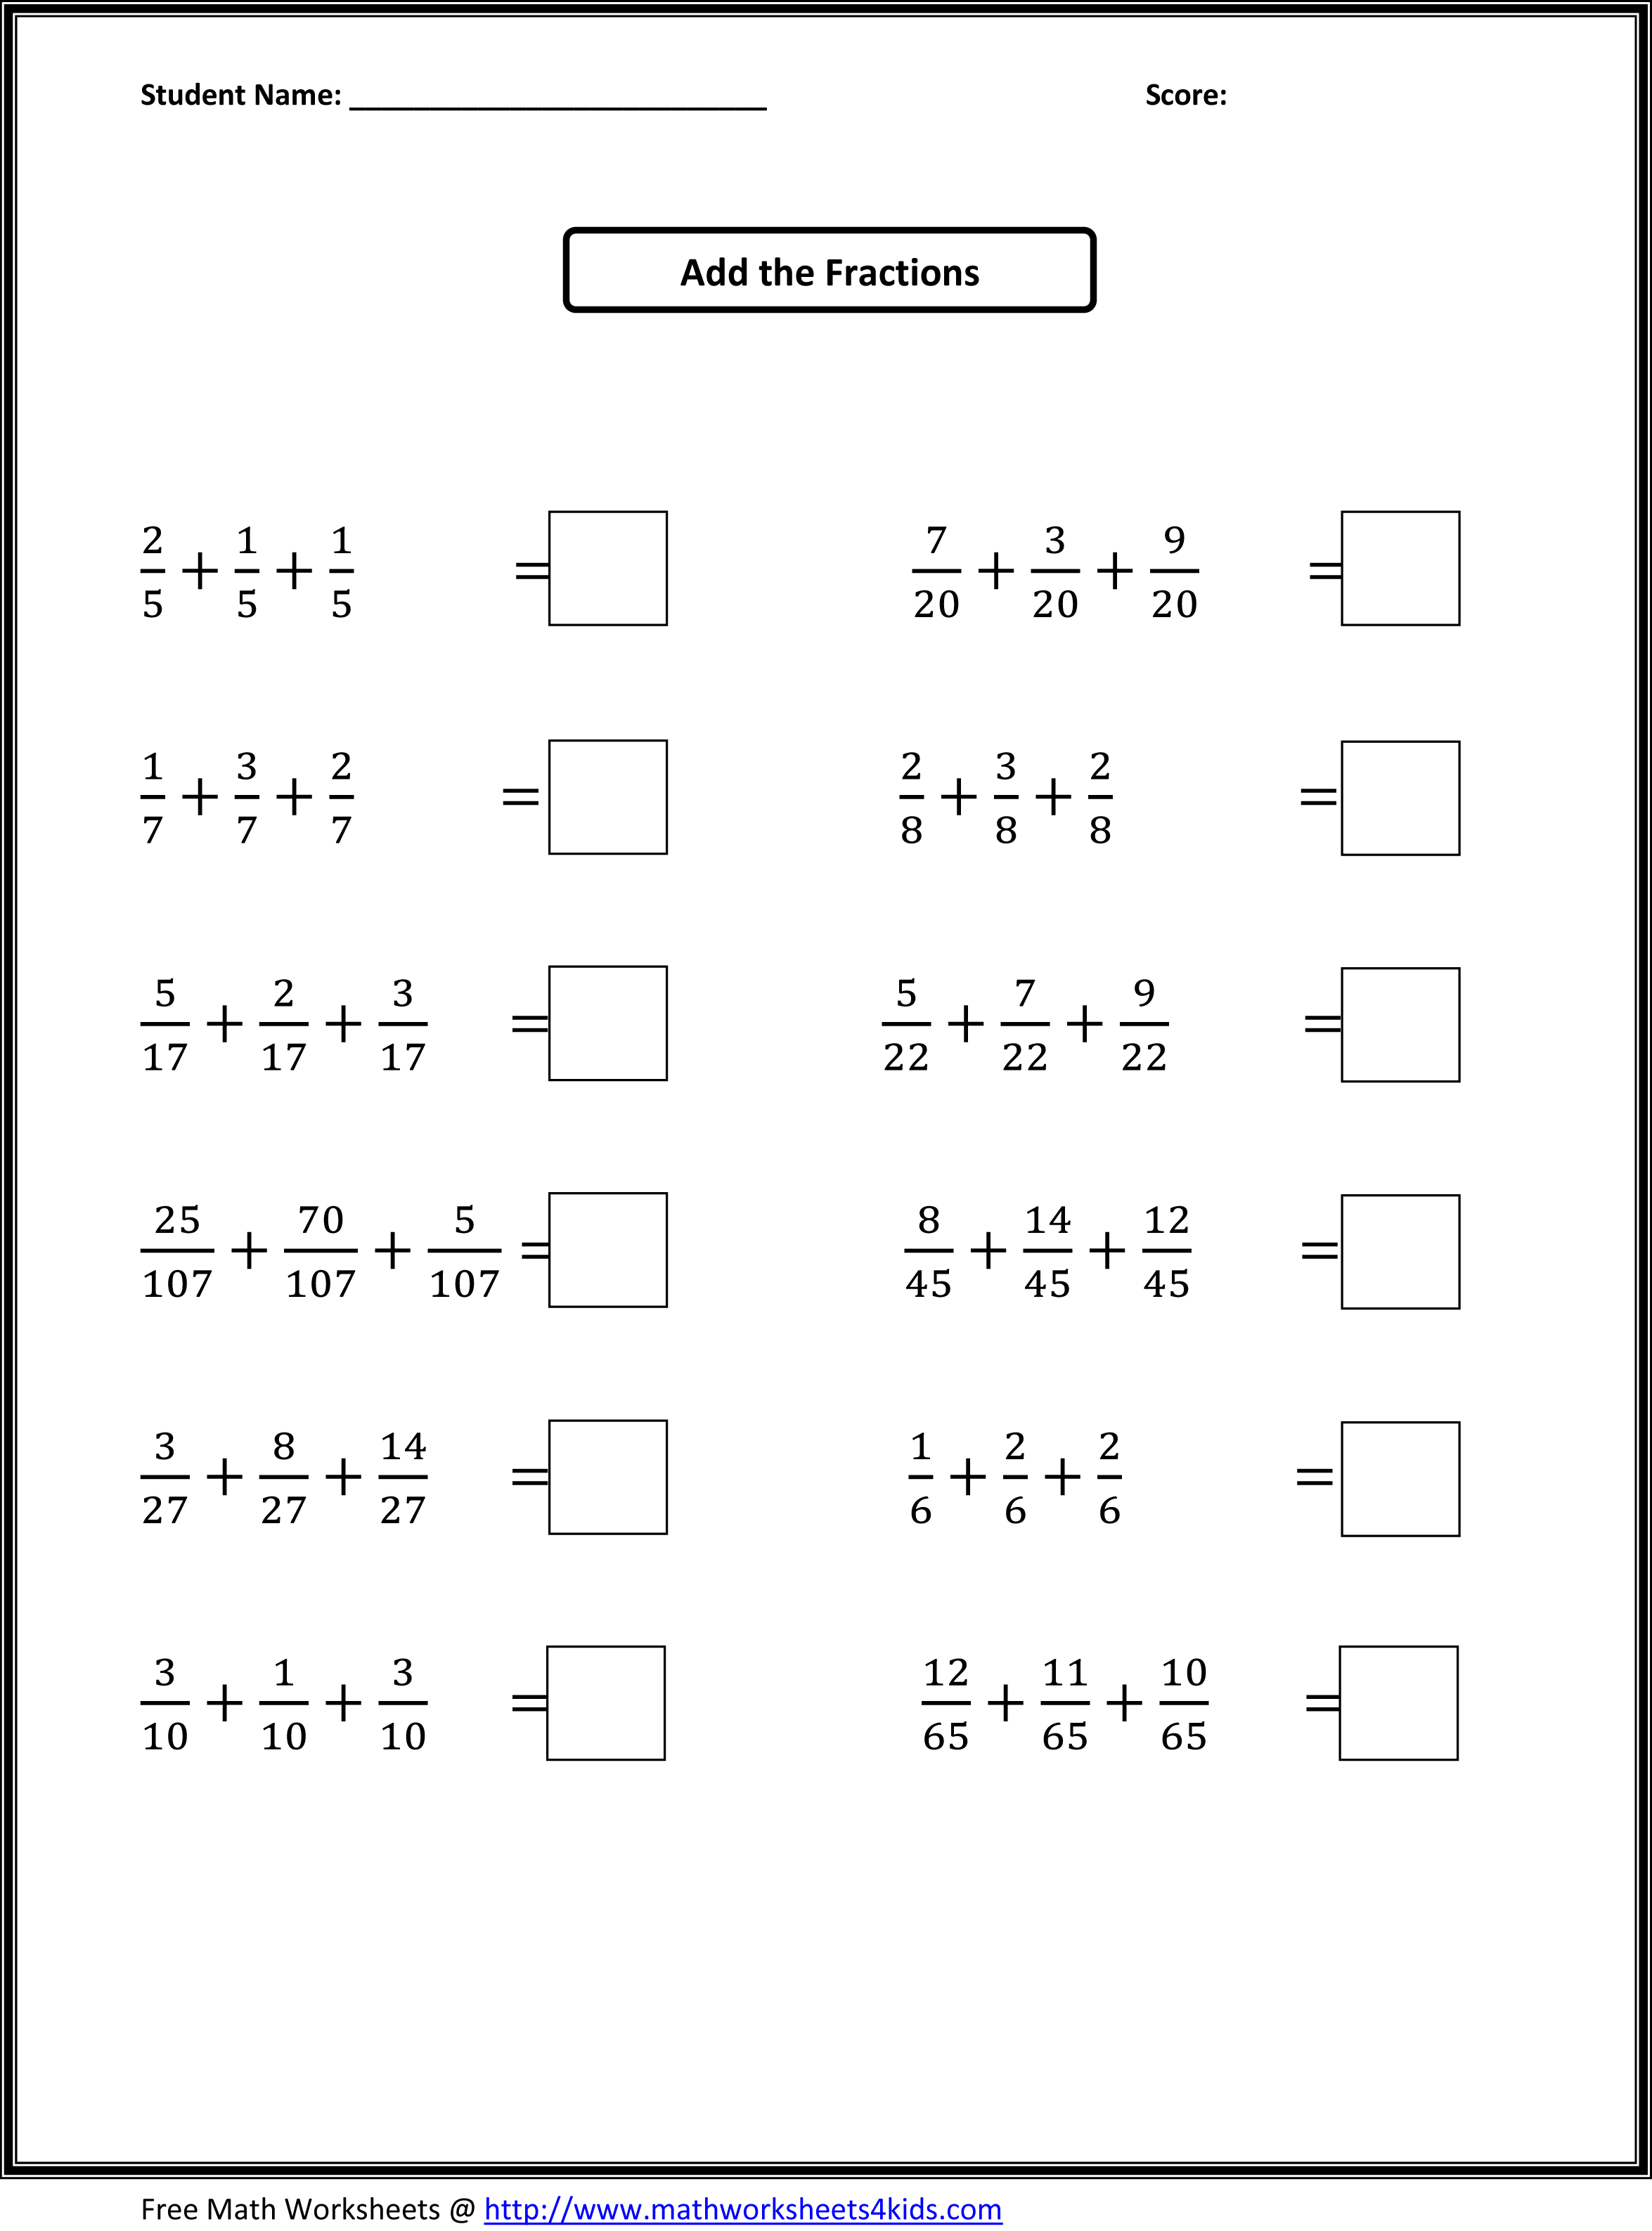 math worksheet : high quality multiplying fractions worksheets grade 7 photos : Fraction Worksheets For Grade 7